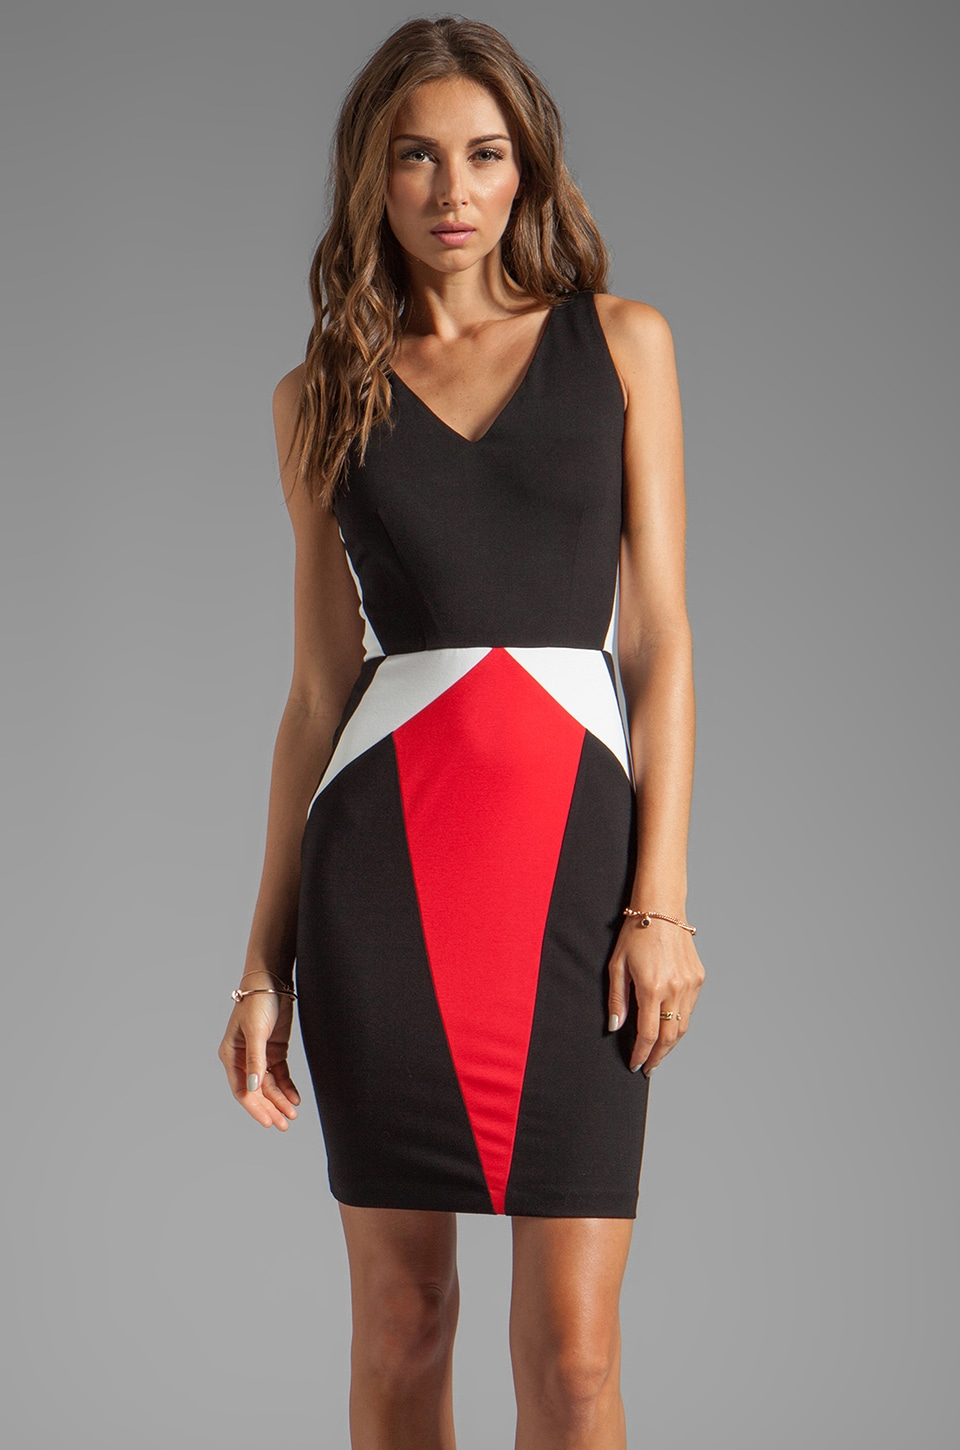 ERIN erin fetherston Julie Dress in Black/White/Ruby Red